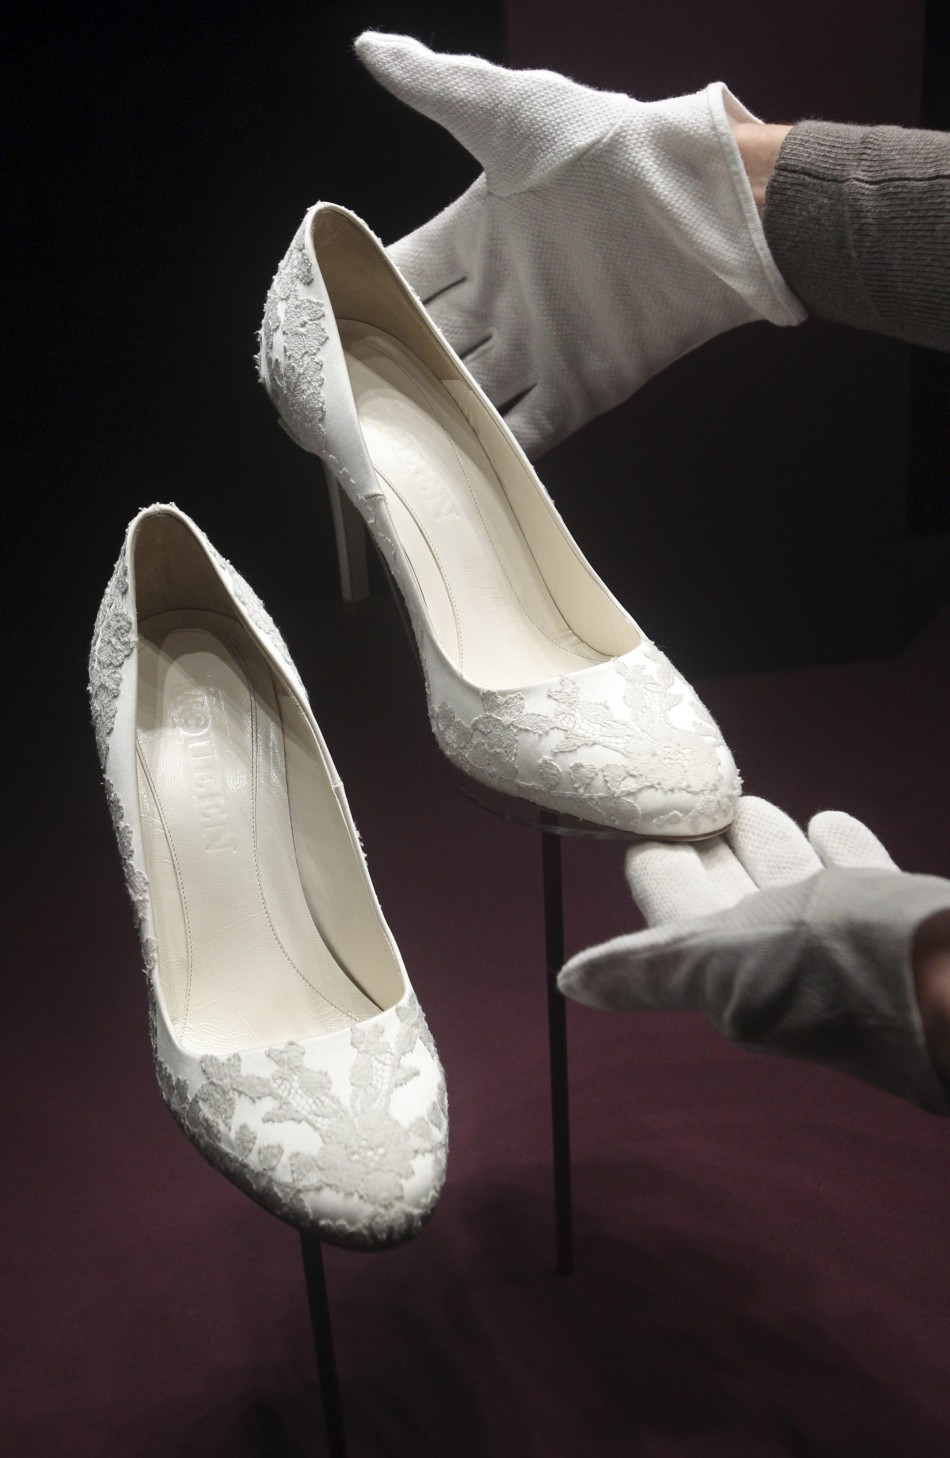 Kate Middleton Day After Wedding Shoes